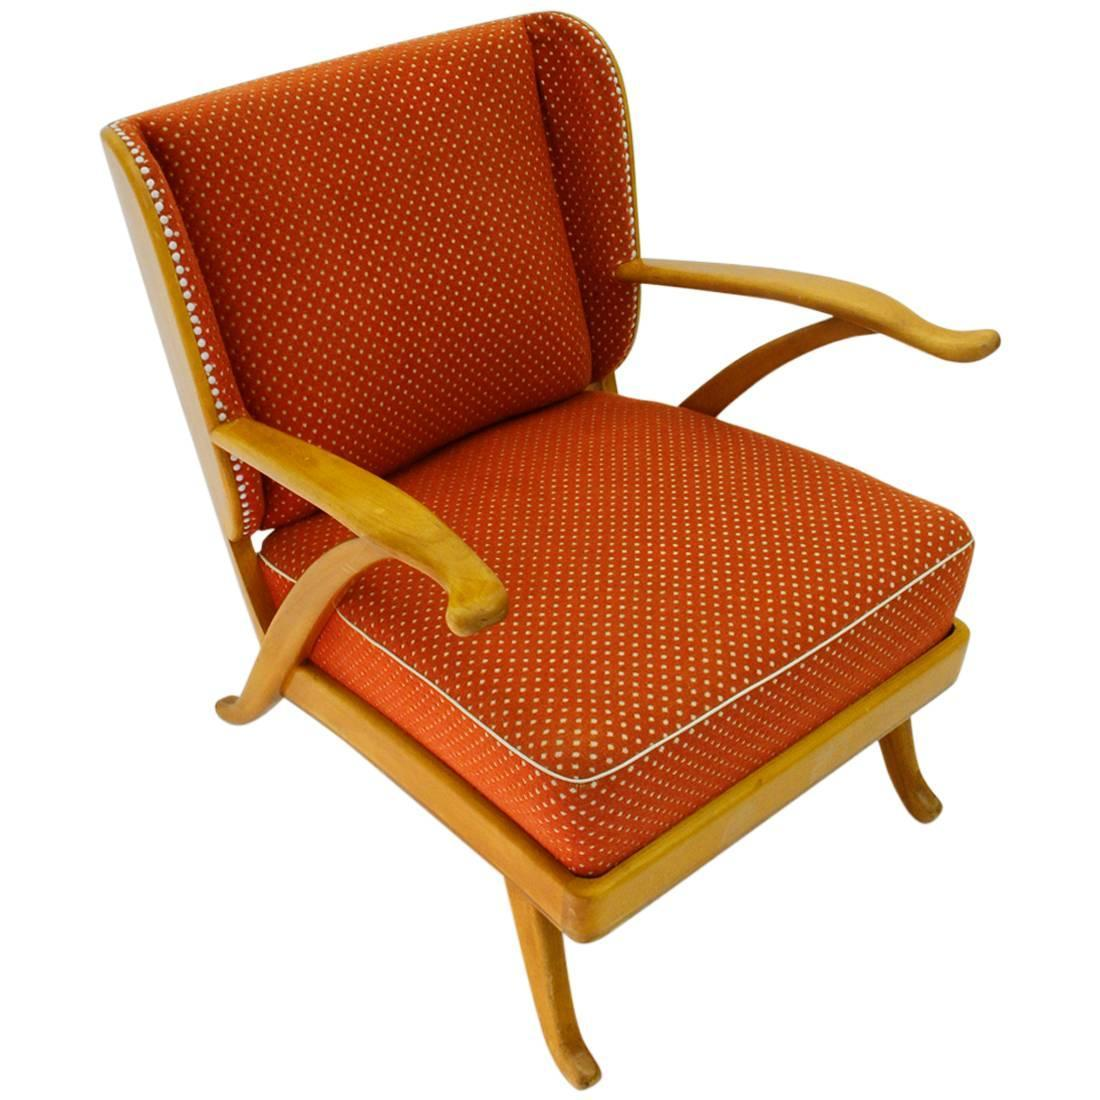 Vintage Italian Wooden Lounge Chair For Sale at 1stdibs